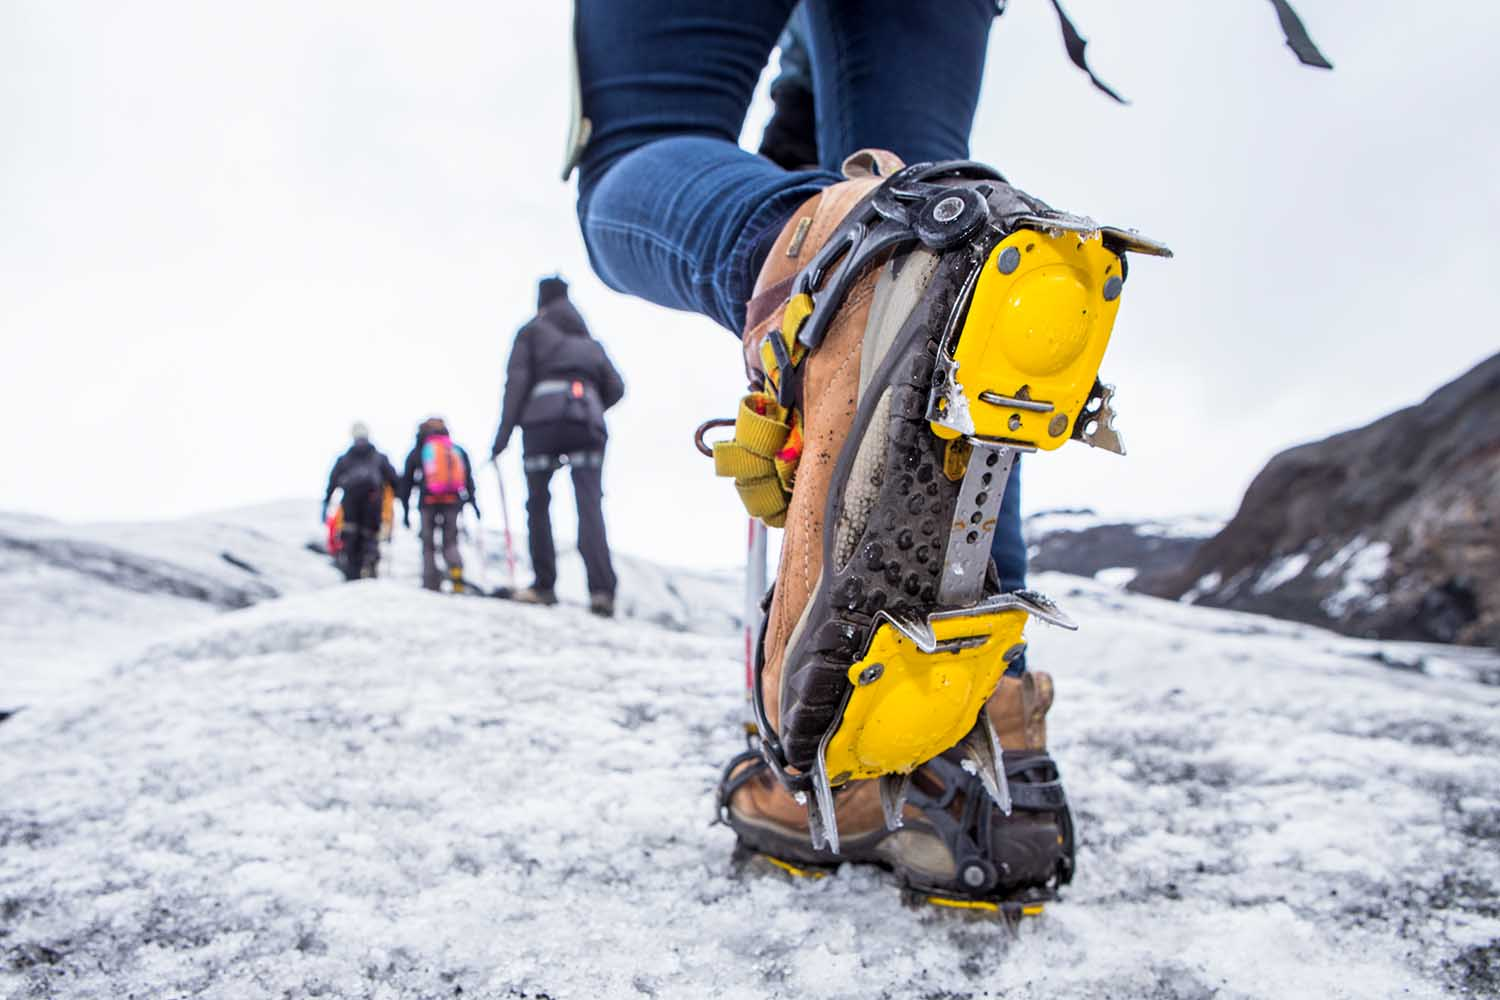 The crampons give good grip